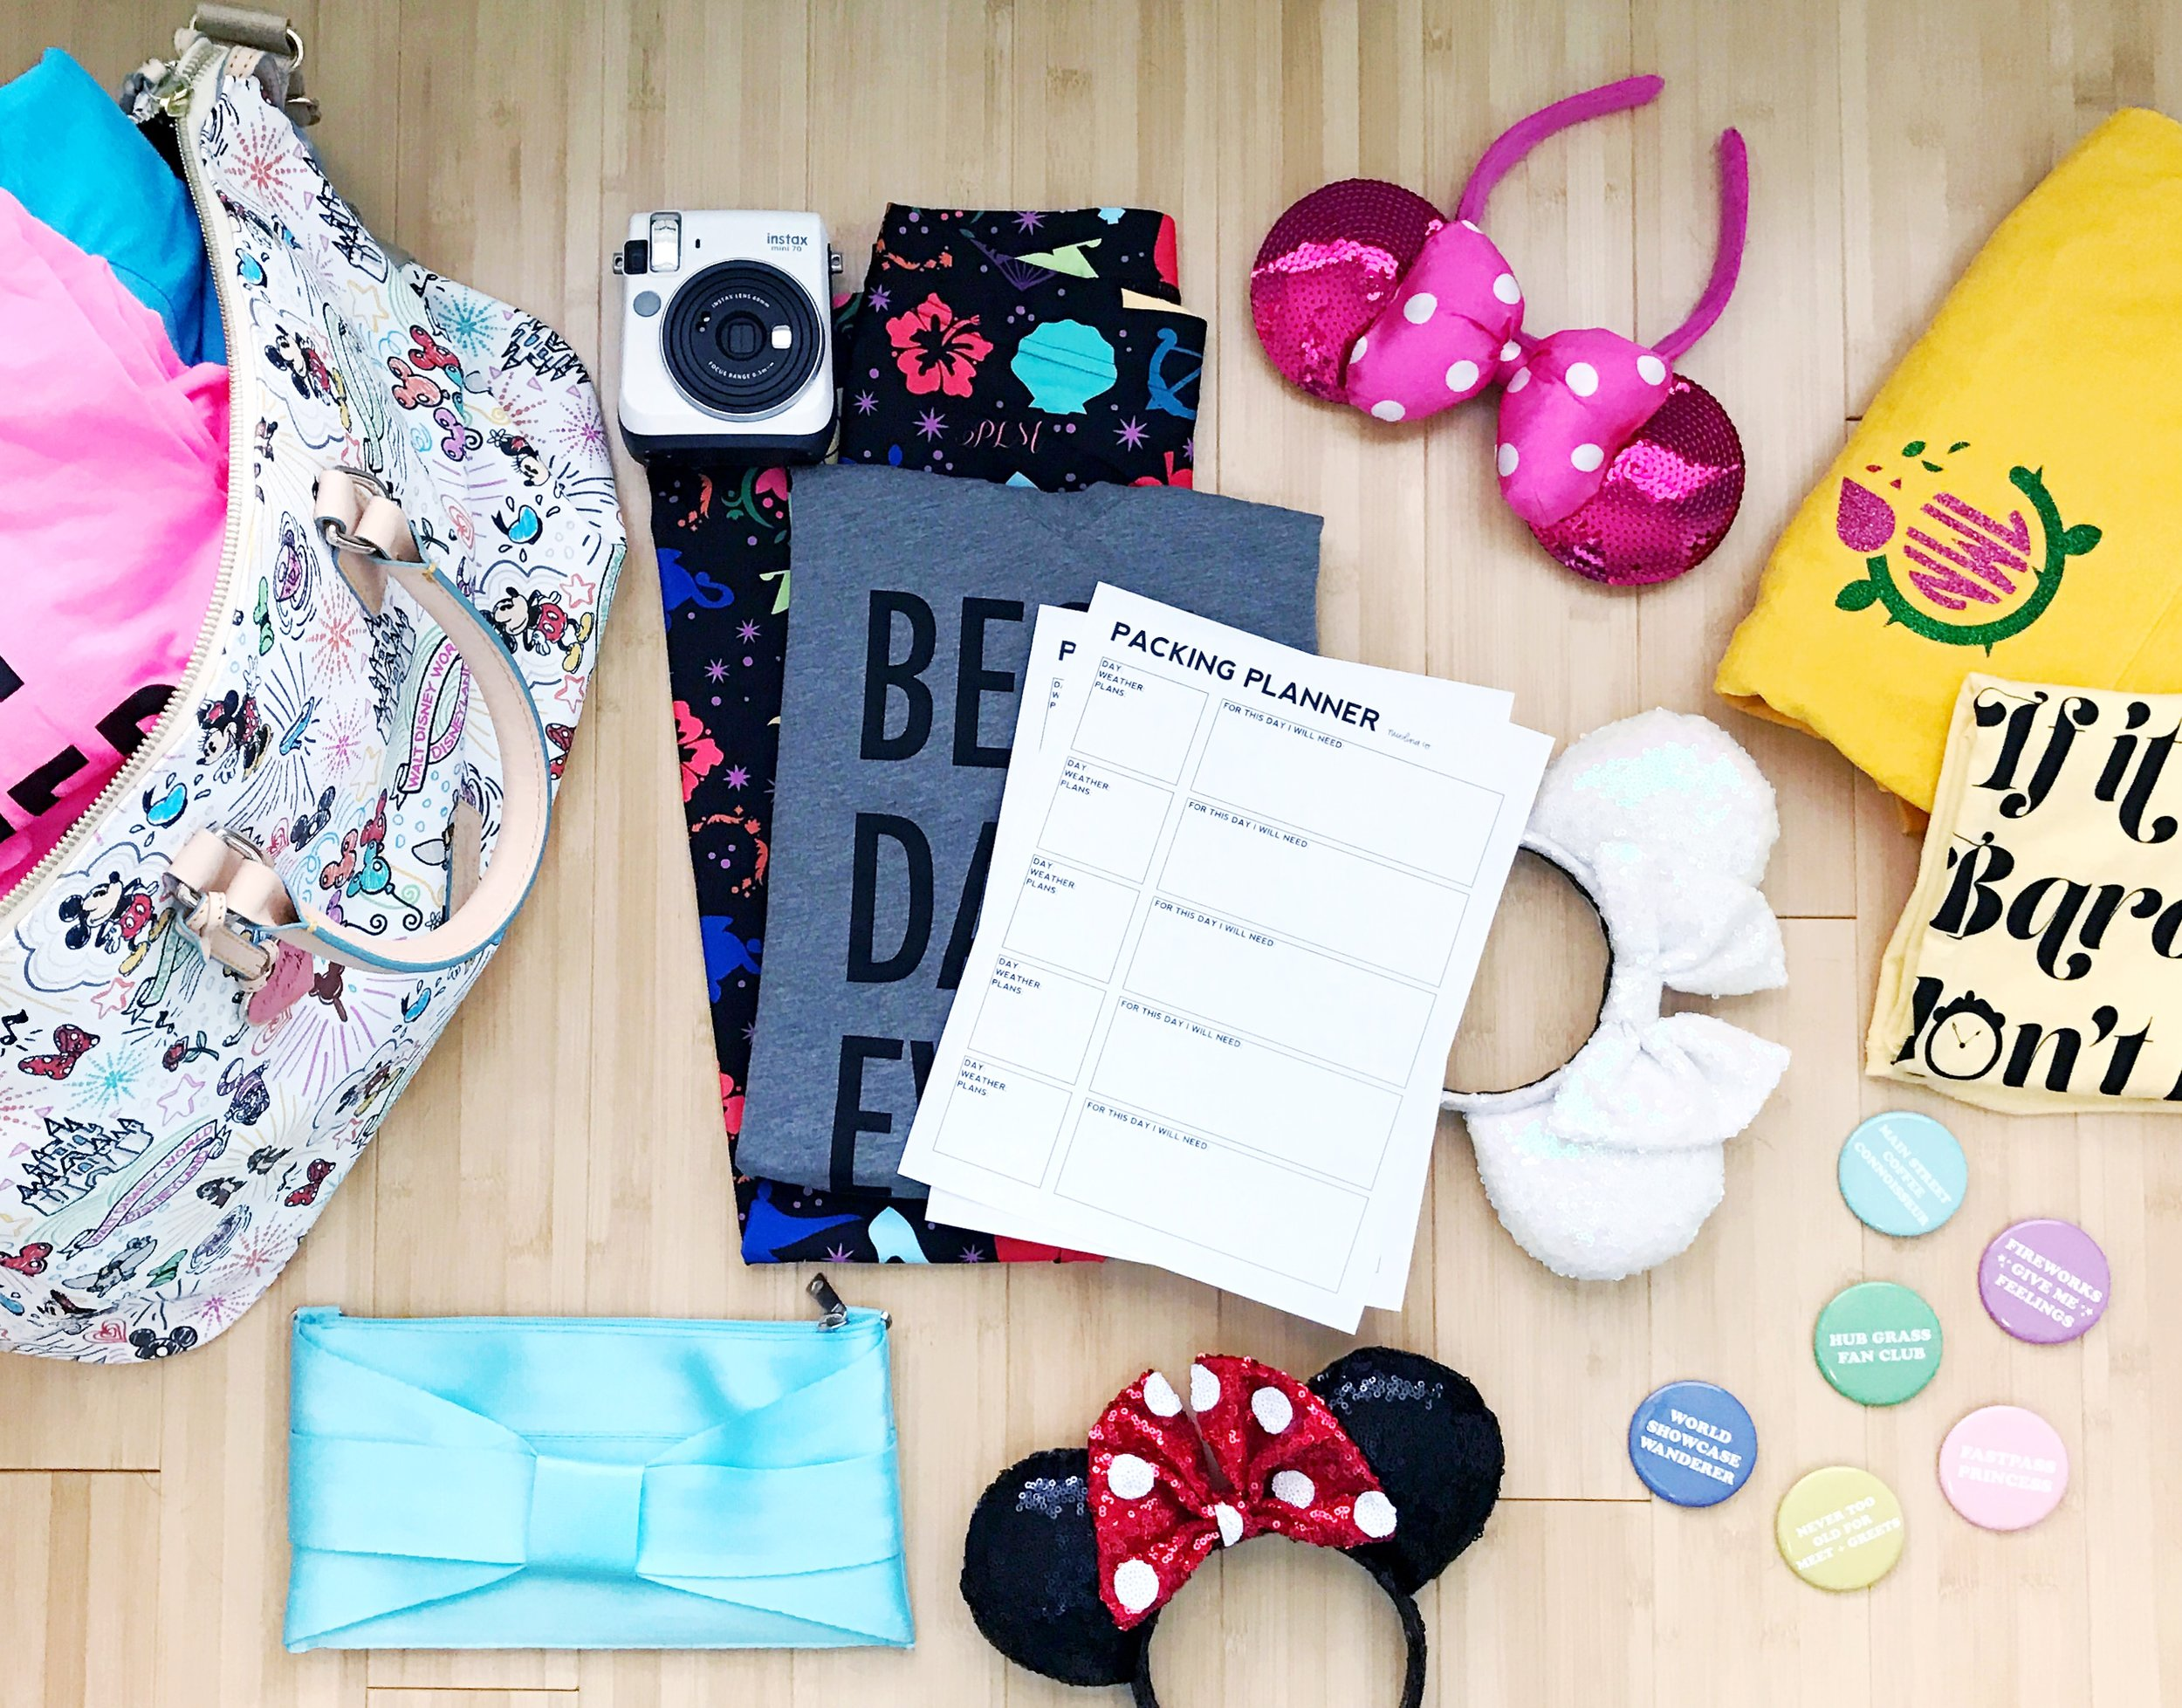 Packing Planner